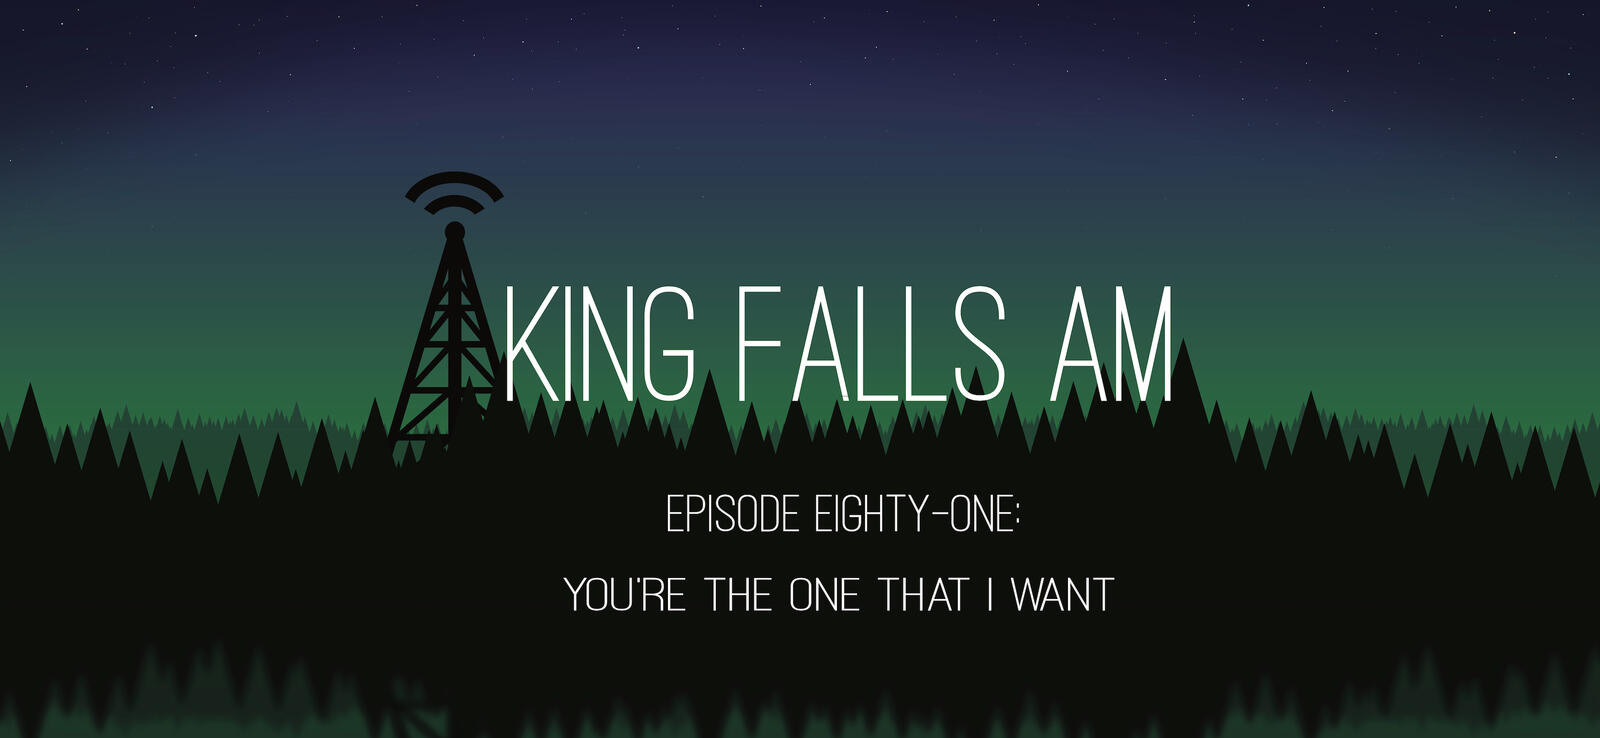 Episode Eighty-One: You're The One That I Want